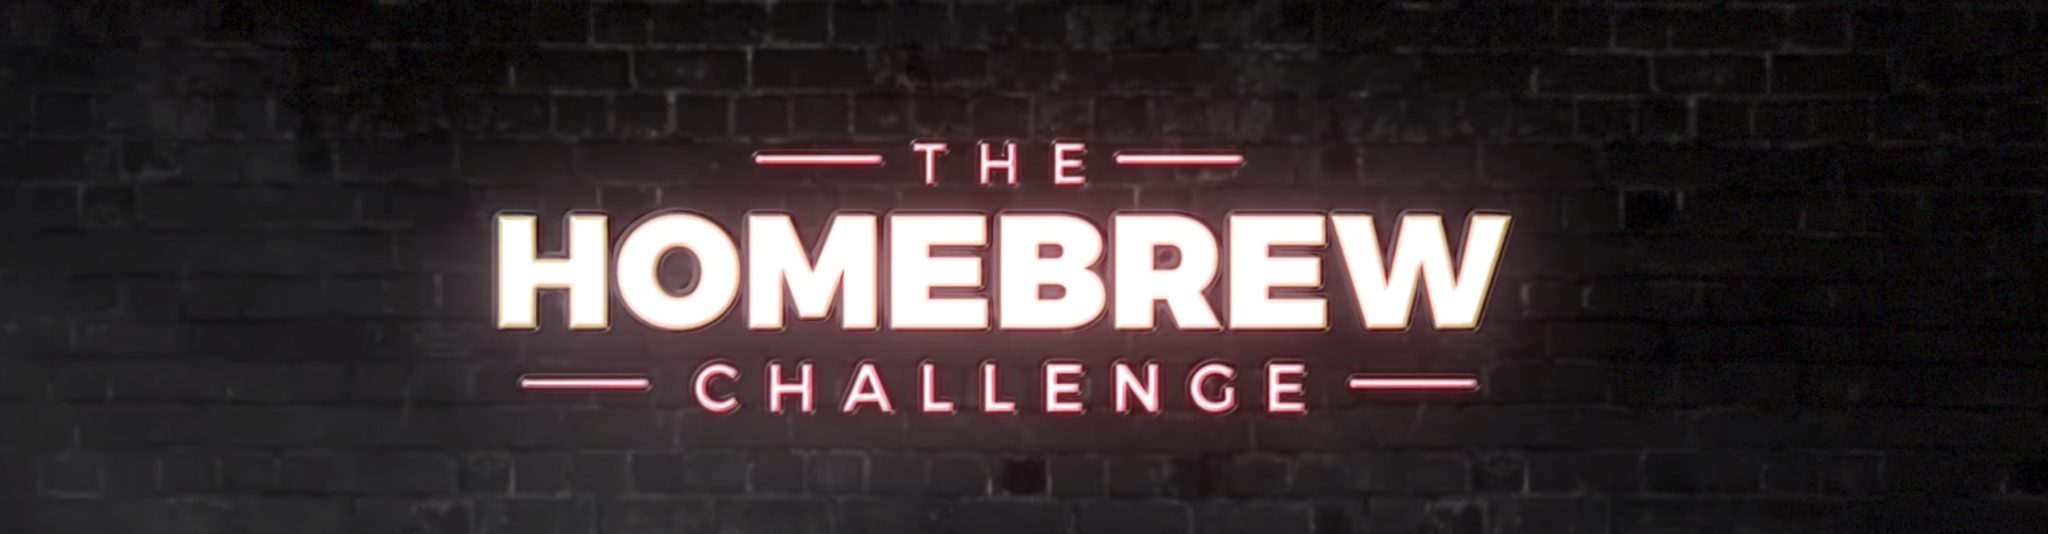 The Homebrew Challenge by Martin Keen